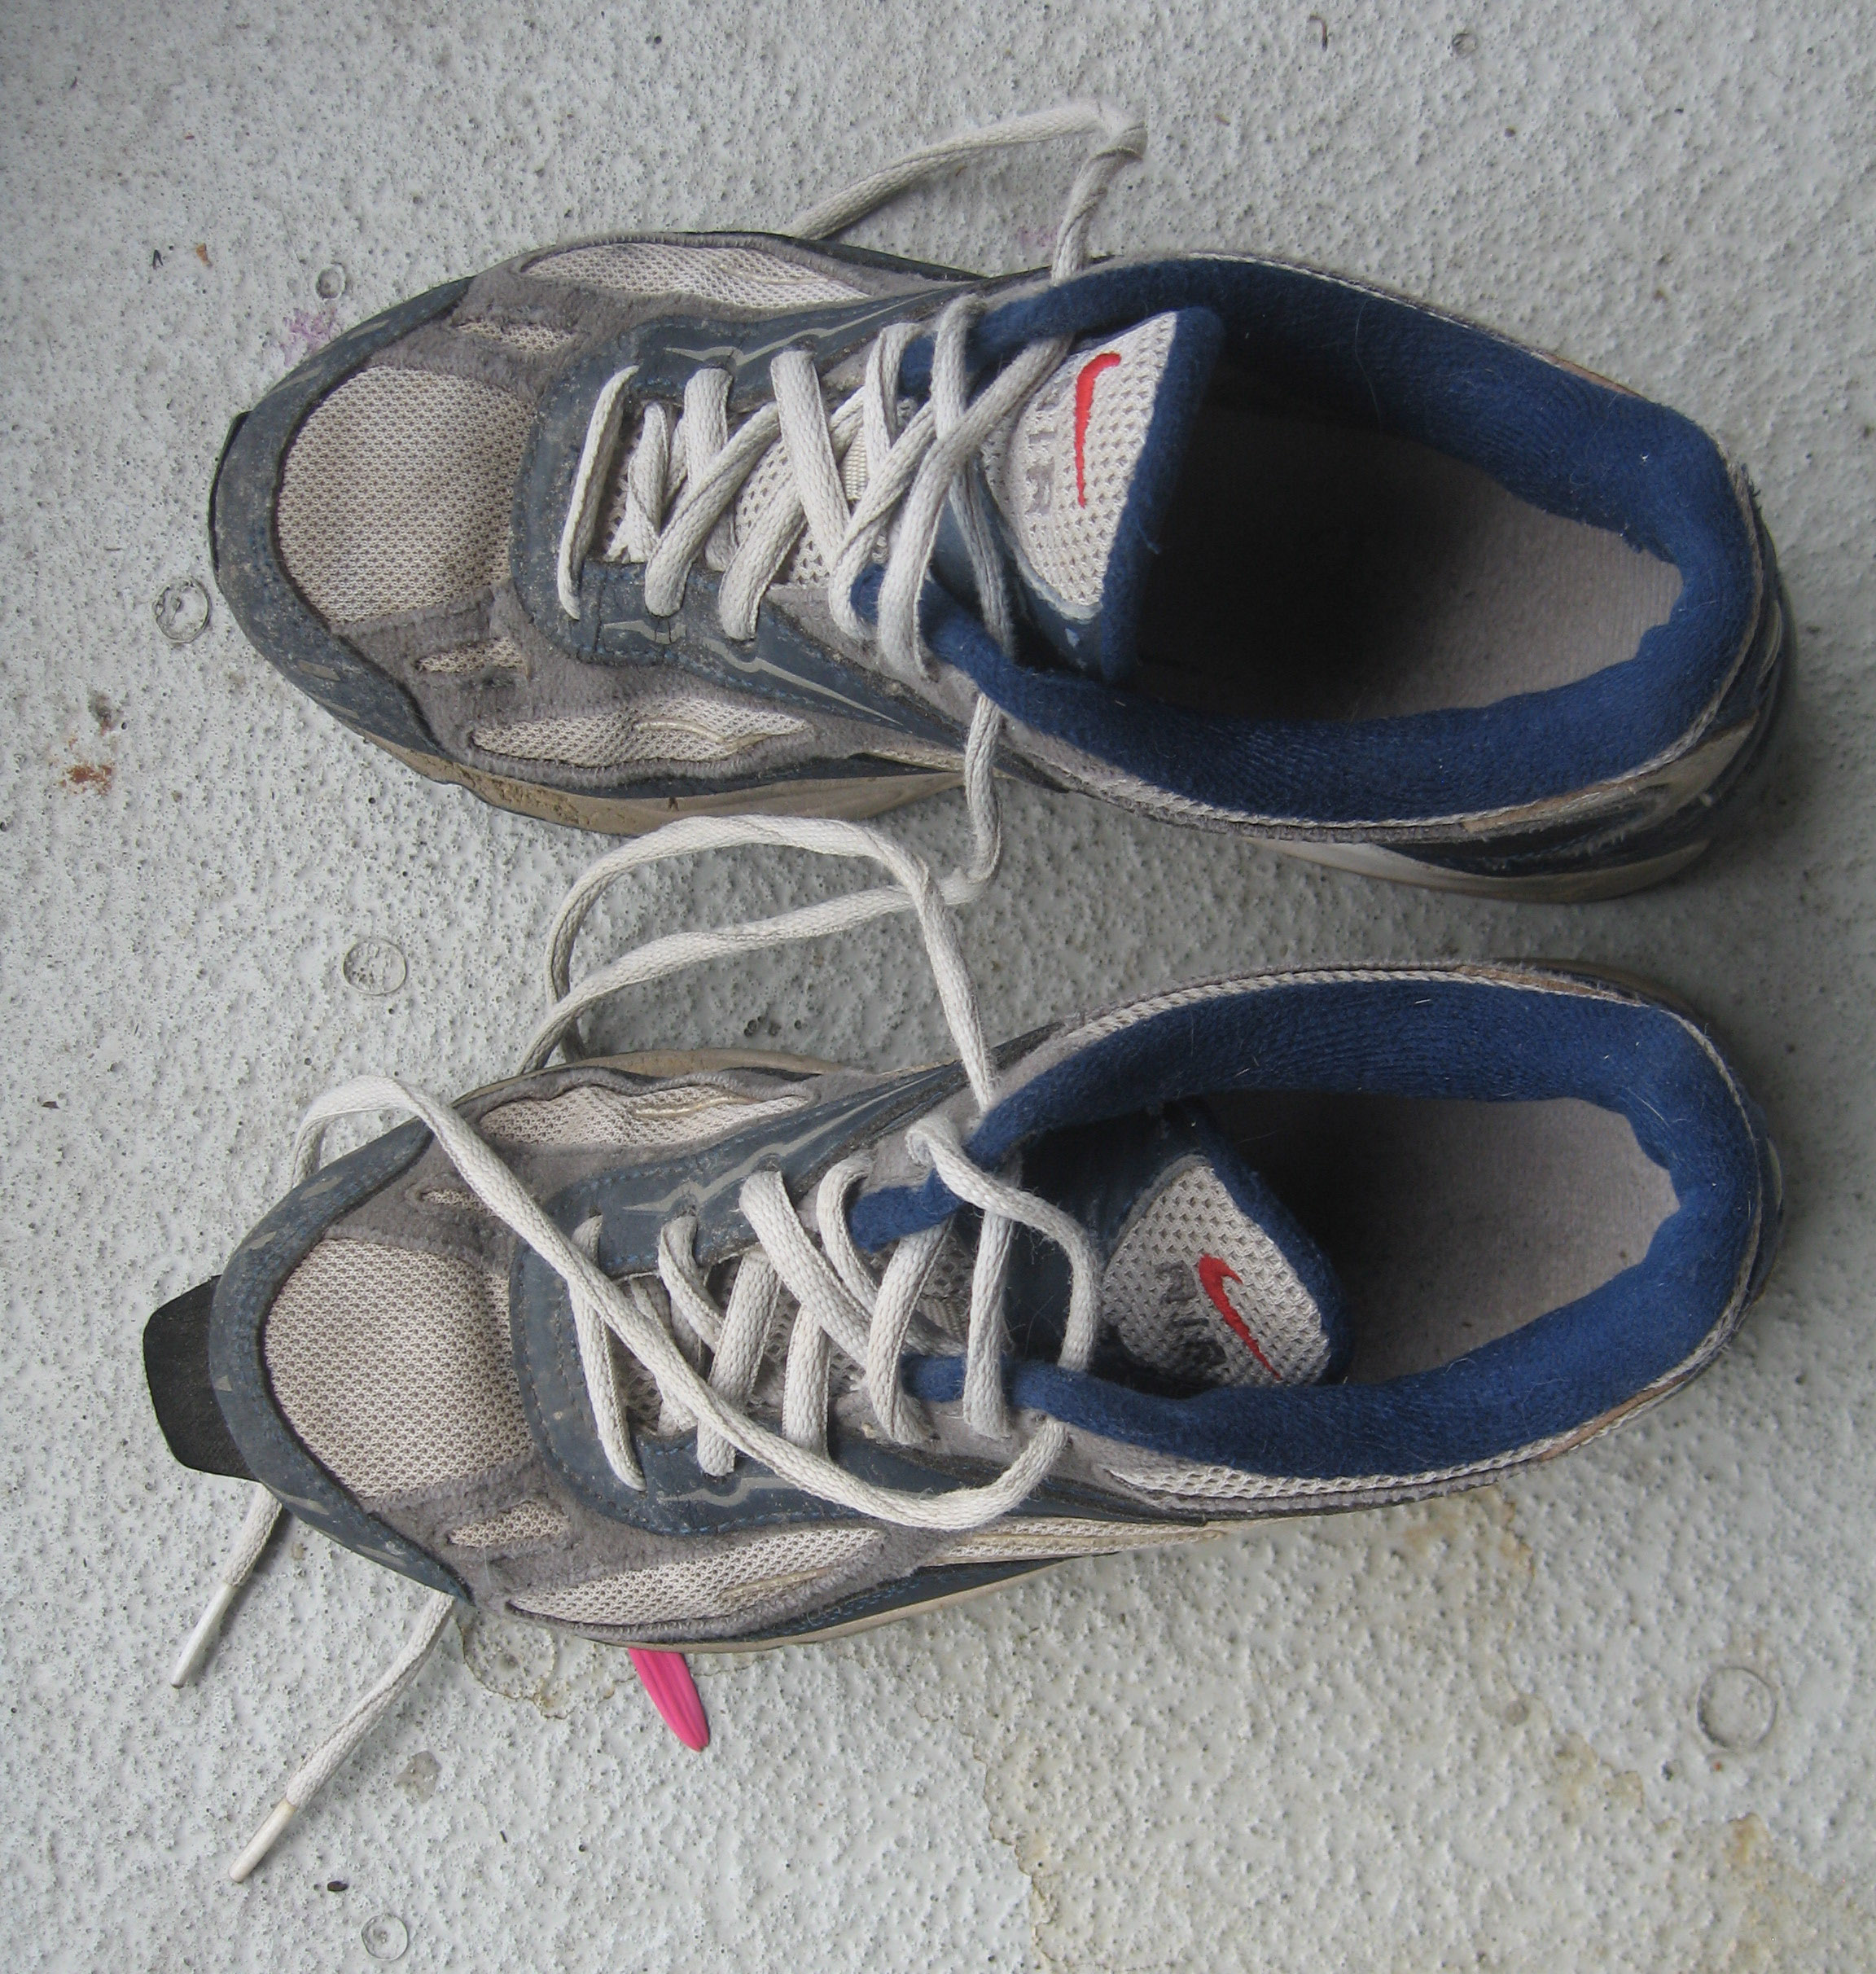 Running gear: when old and treasured is